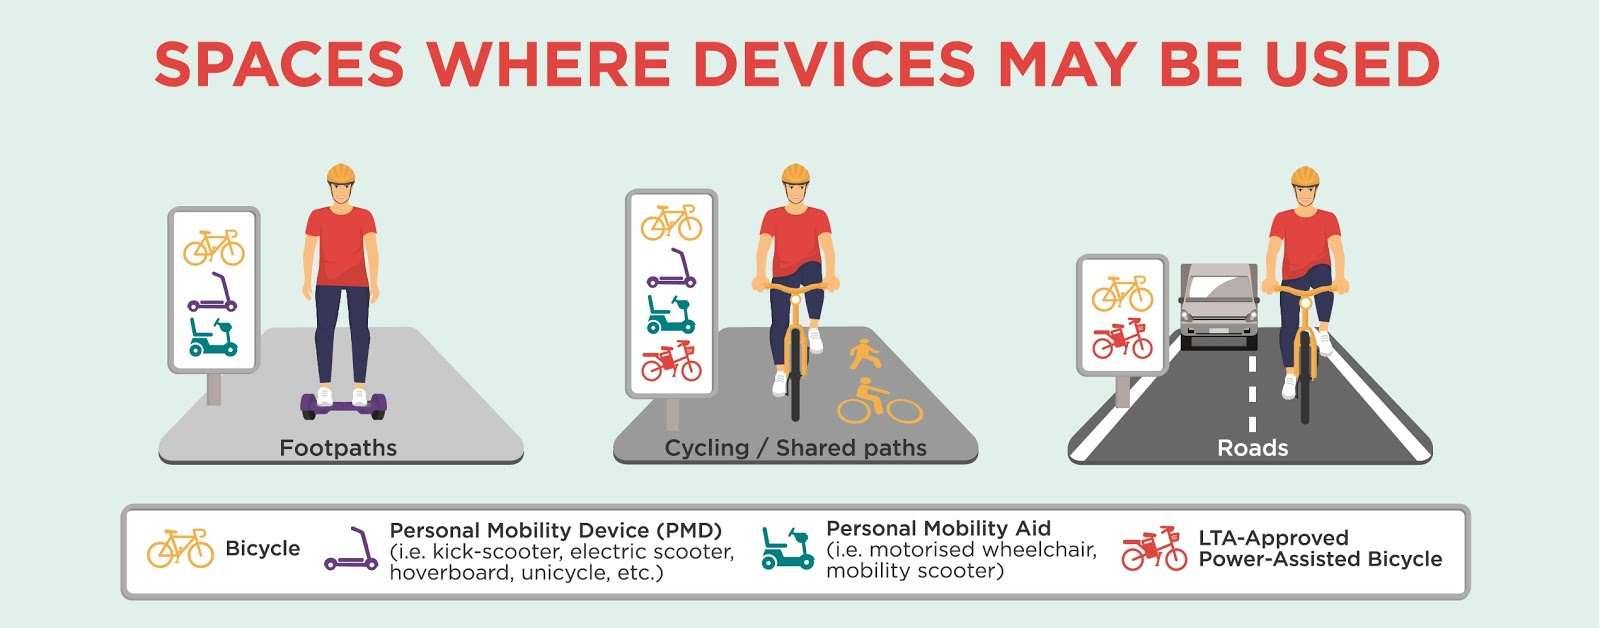 Spaces where Personal Mobility Devices (PMDs) may be used